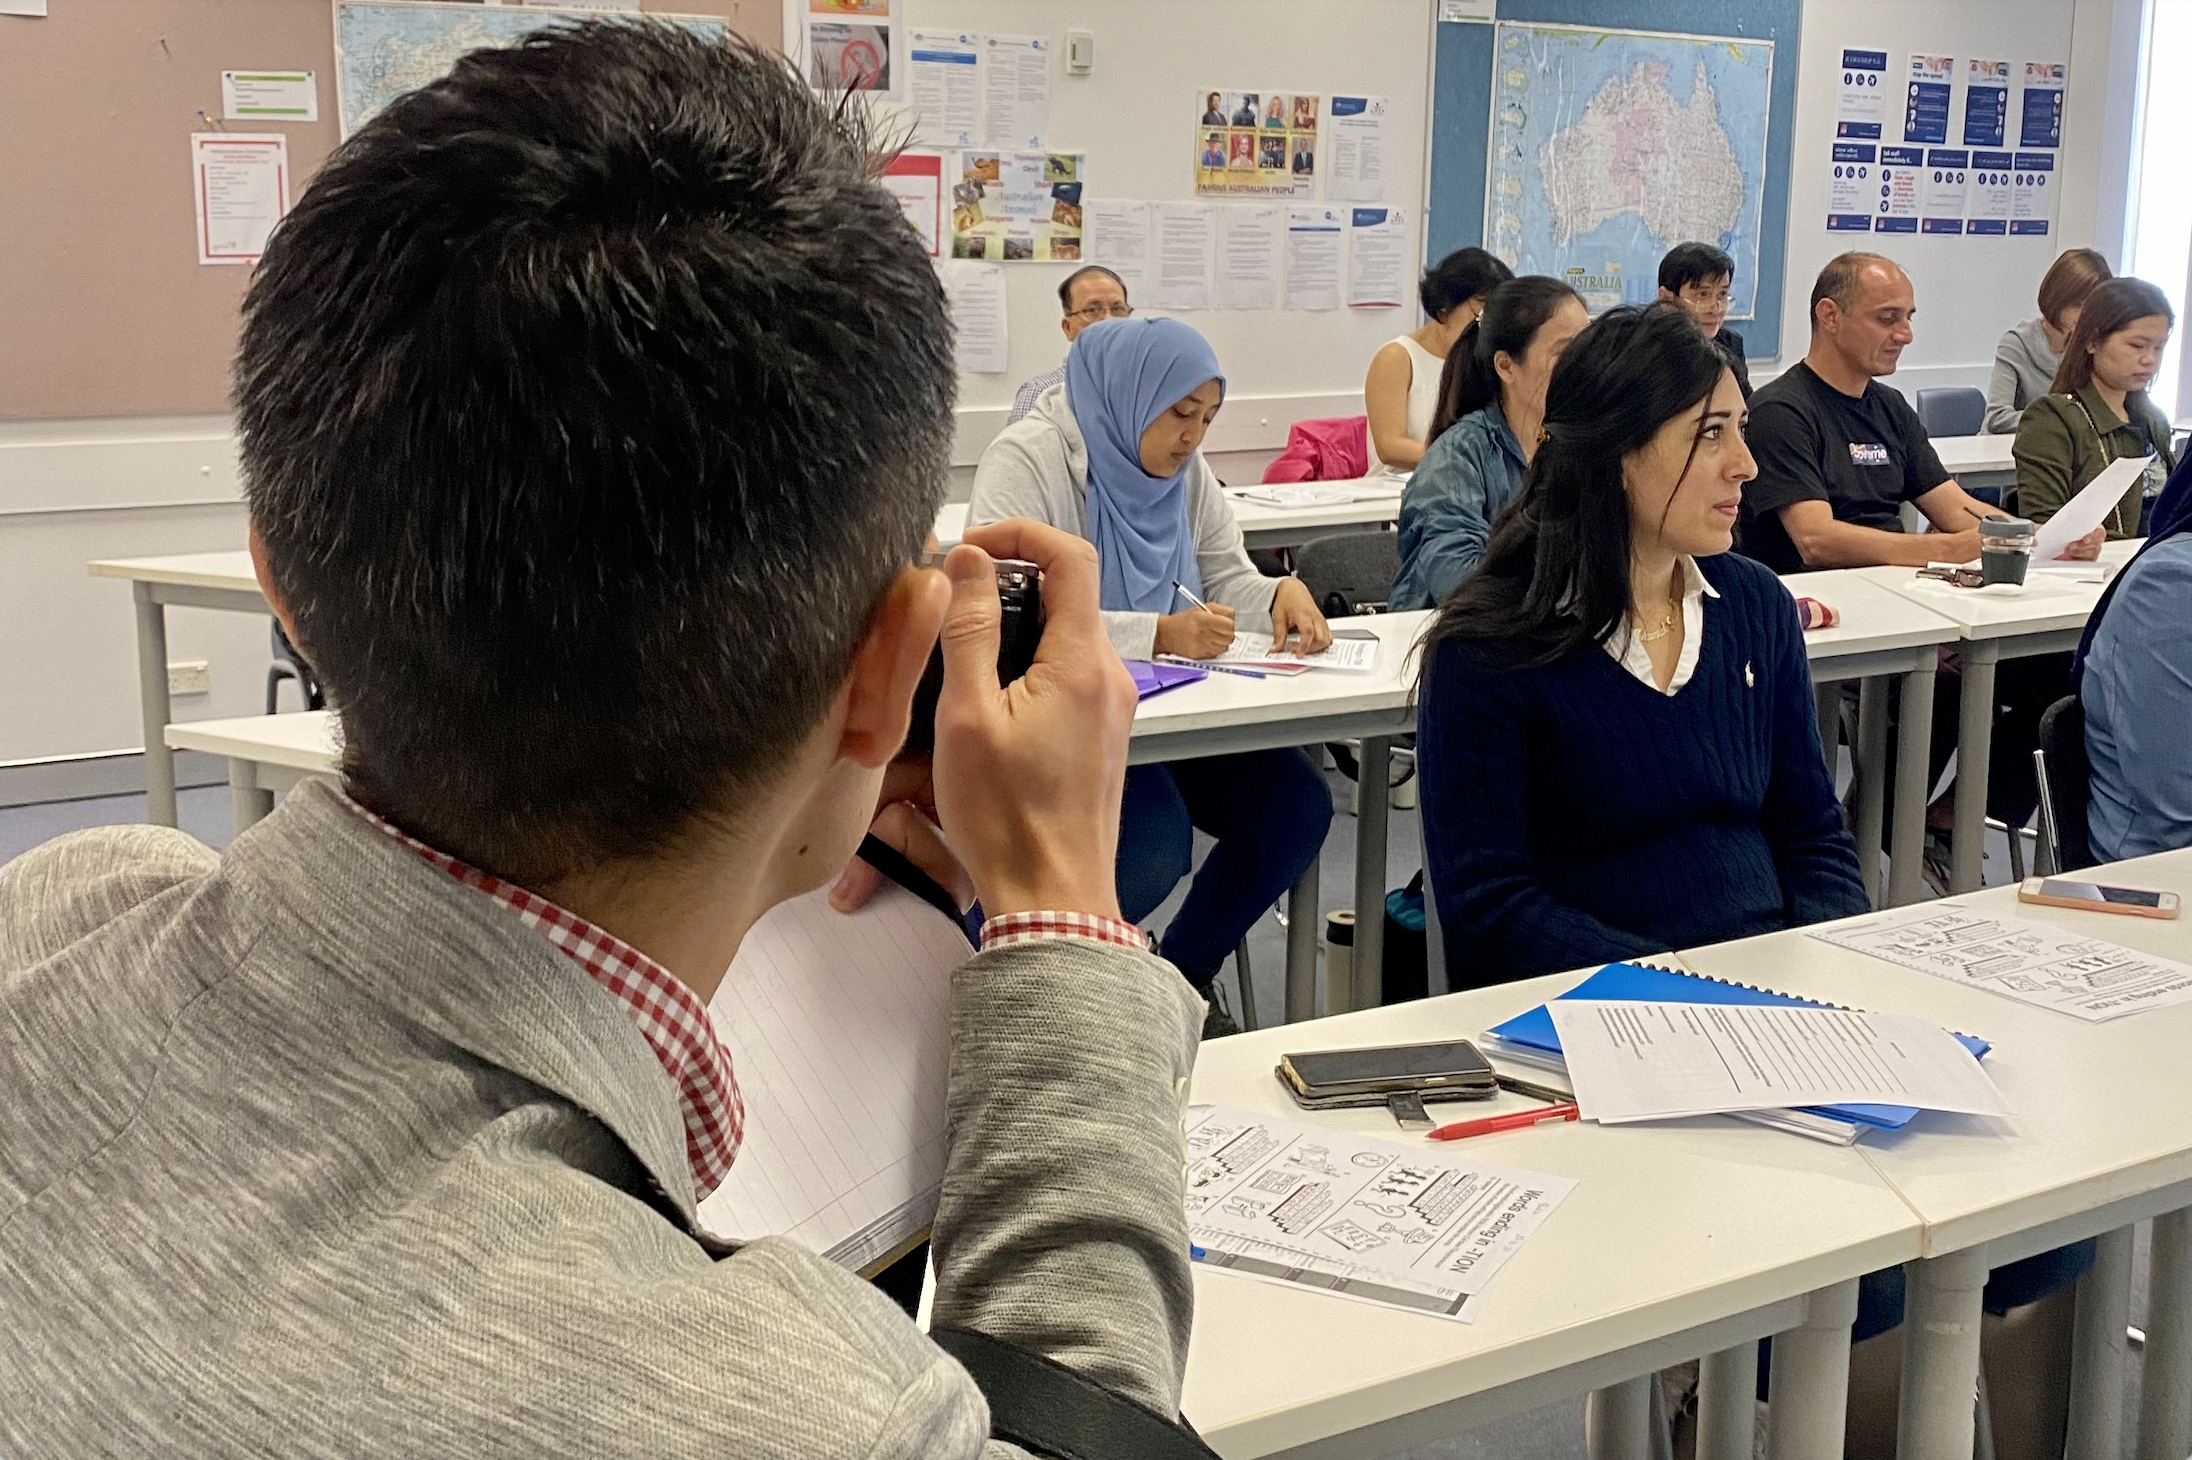 Adults learning in a classroom. Man taking a picture of them